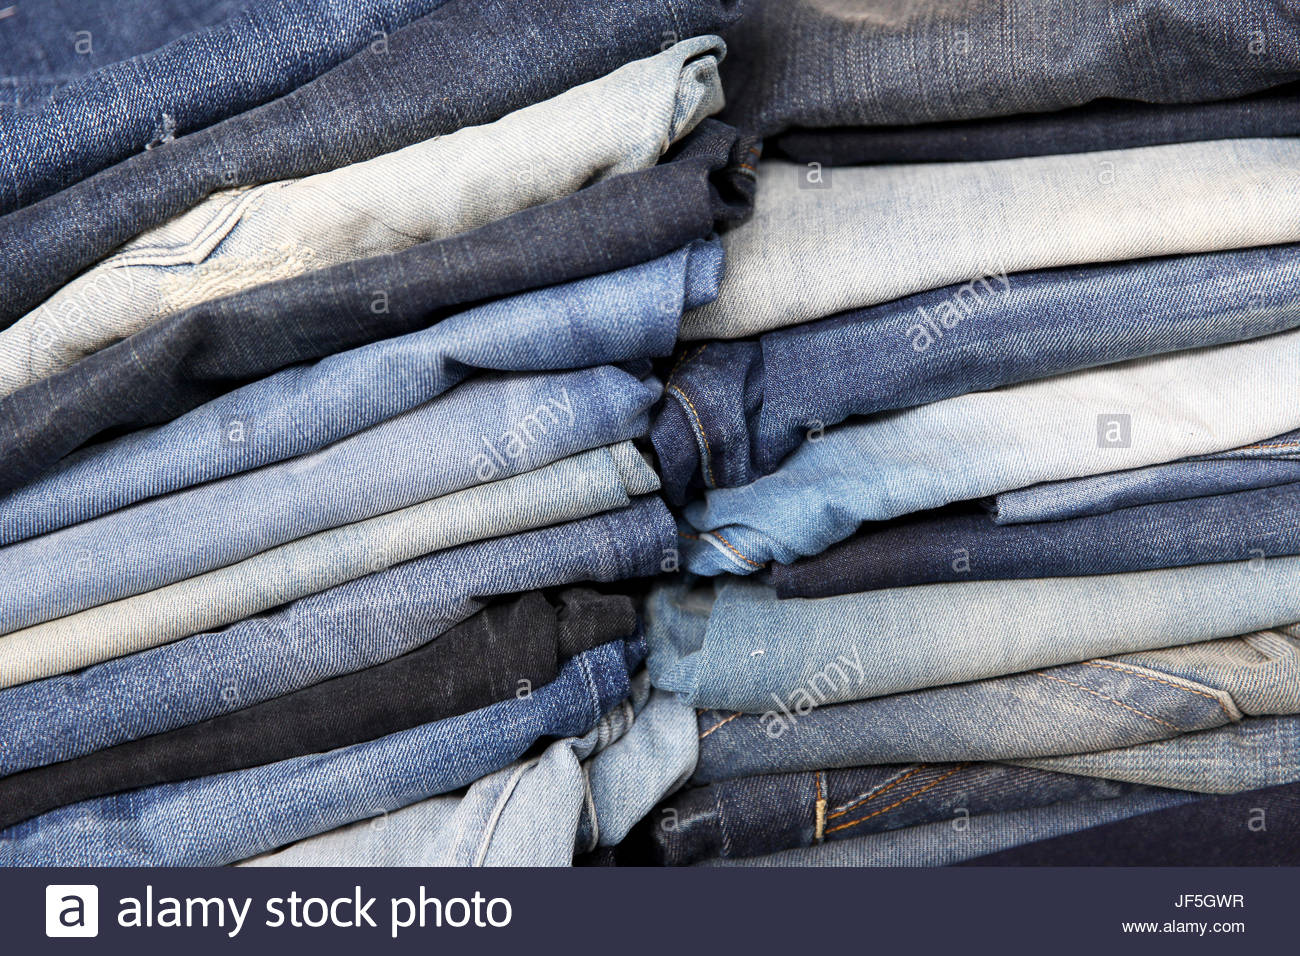 Jeans stacked in a showroom at a denim factory. - Stock Image